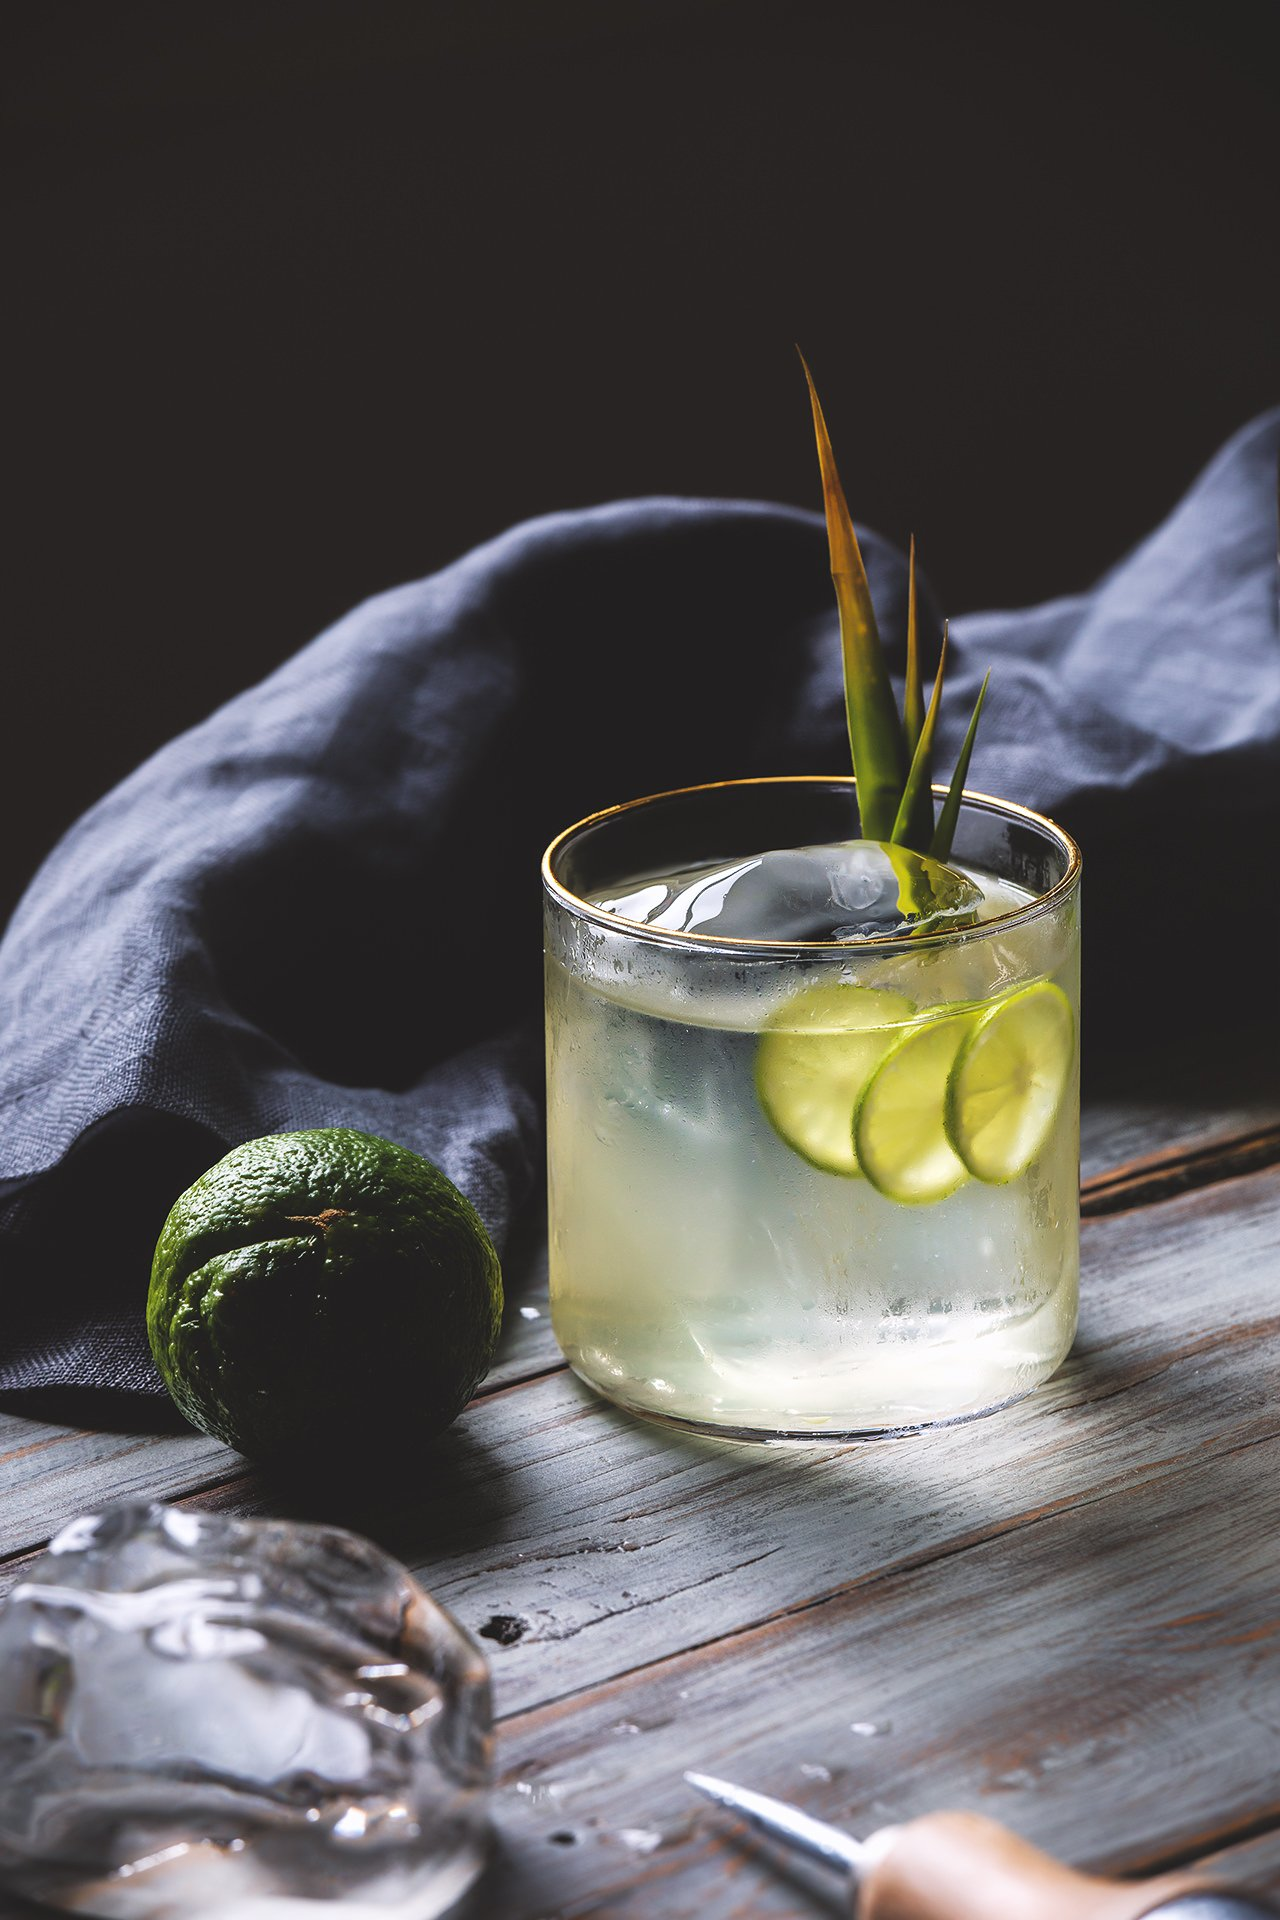 Chartreuse and Tequila Milk Punch | HonestlyYUM (honestlyyum.com)